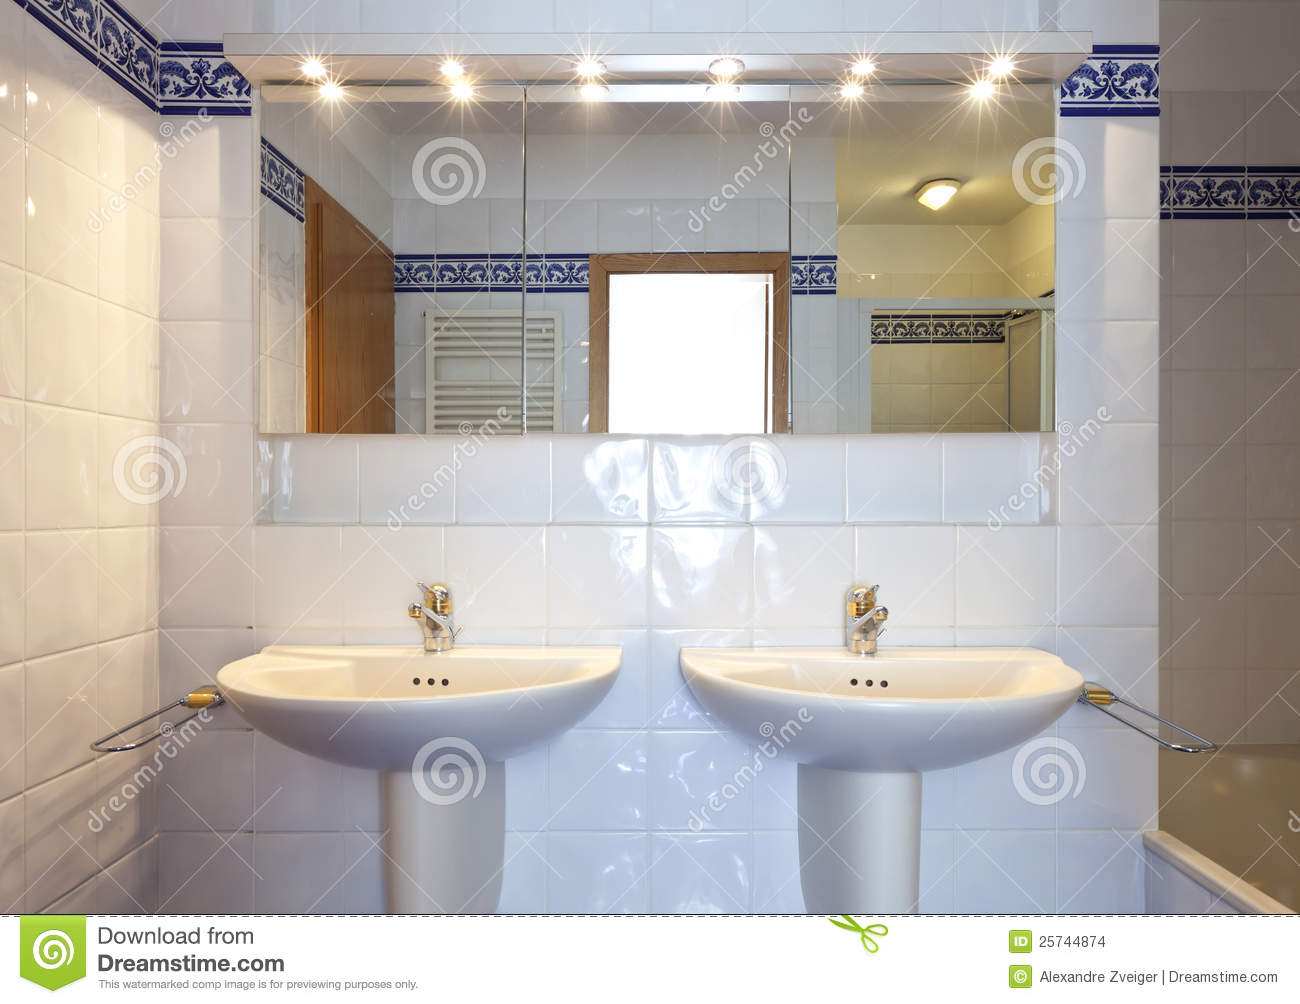 Bathroom sink and mirror - Bathroom Sink And Mirror Stock Images